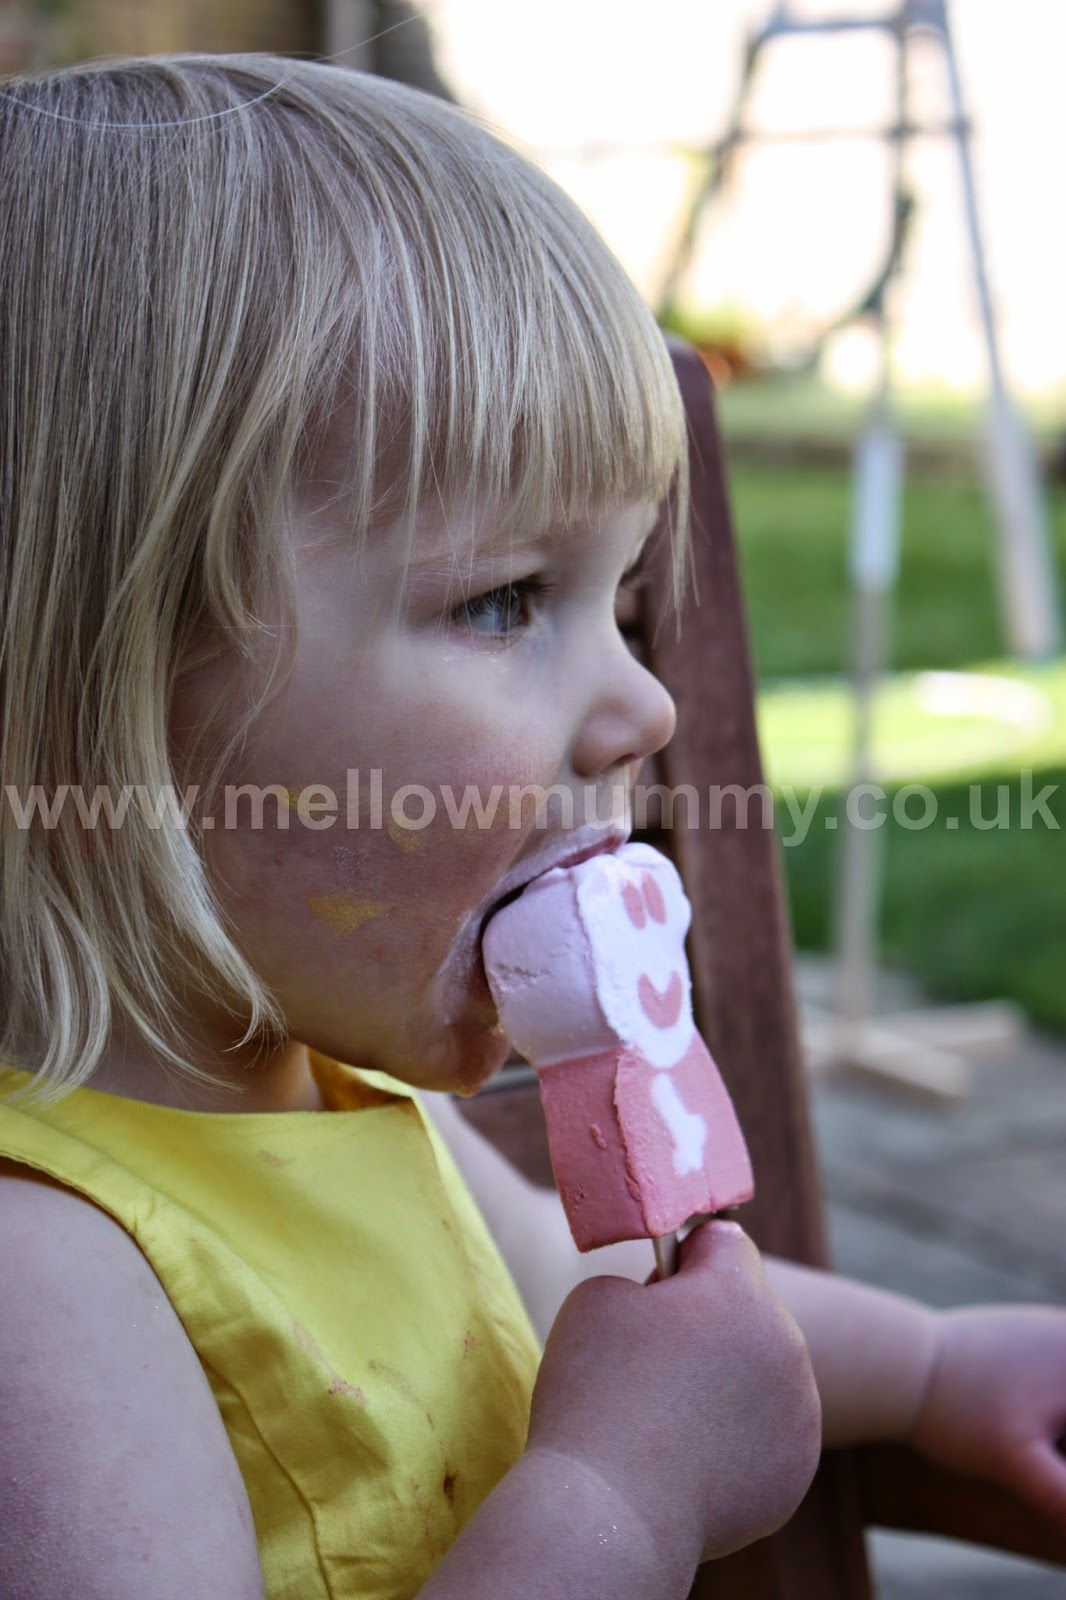 Eating Peppa Pig Ice Cream